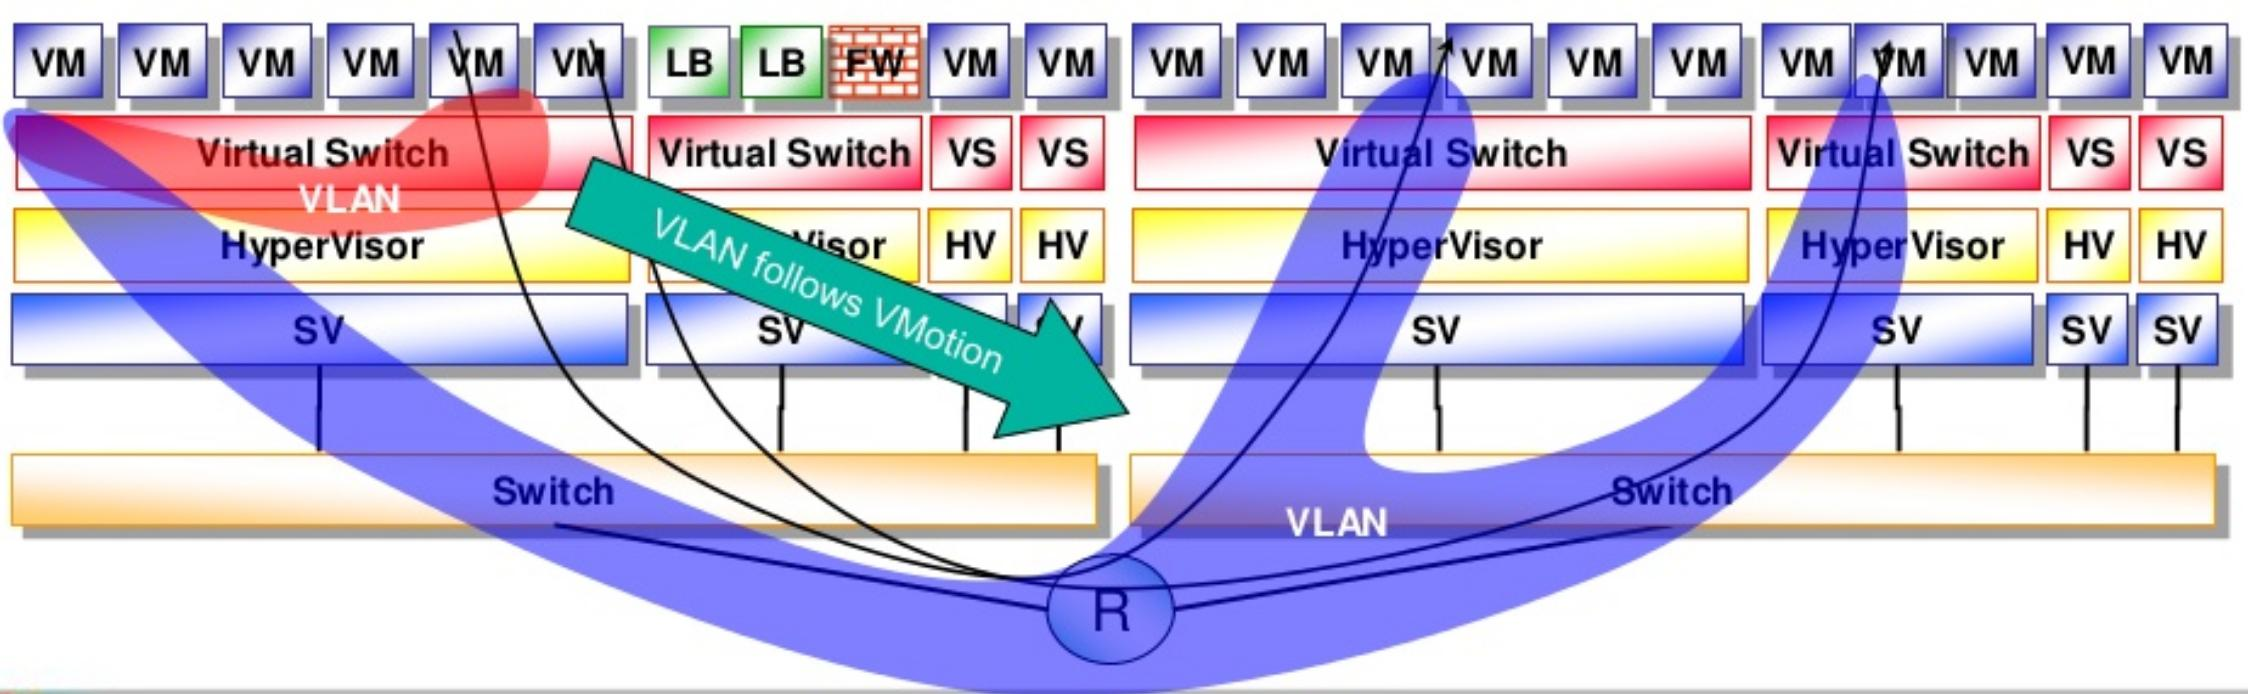 SDN Networking & Virtualization Manually